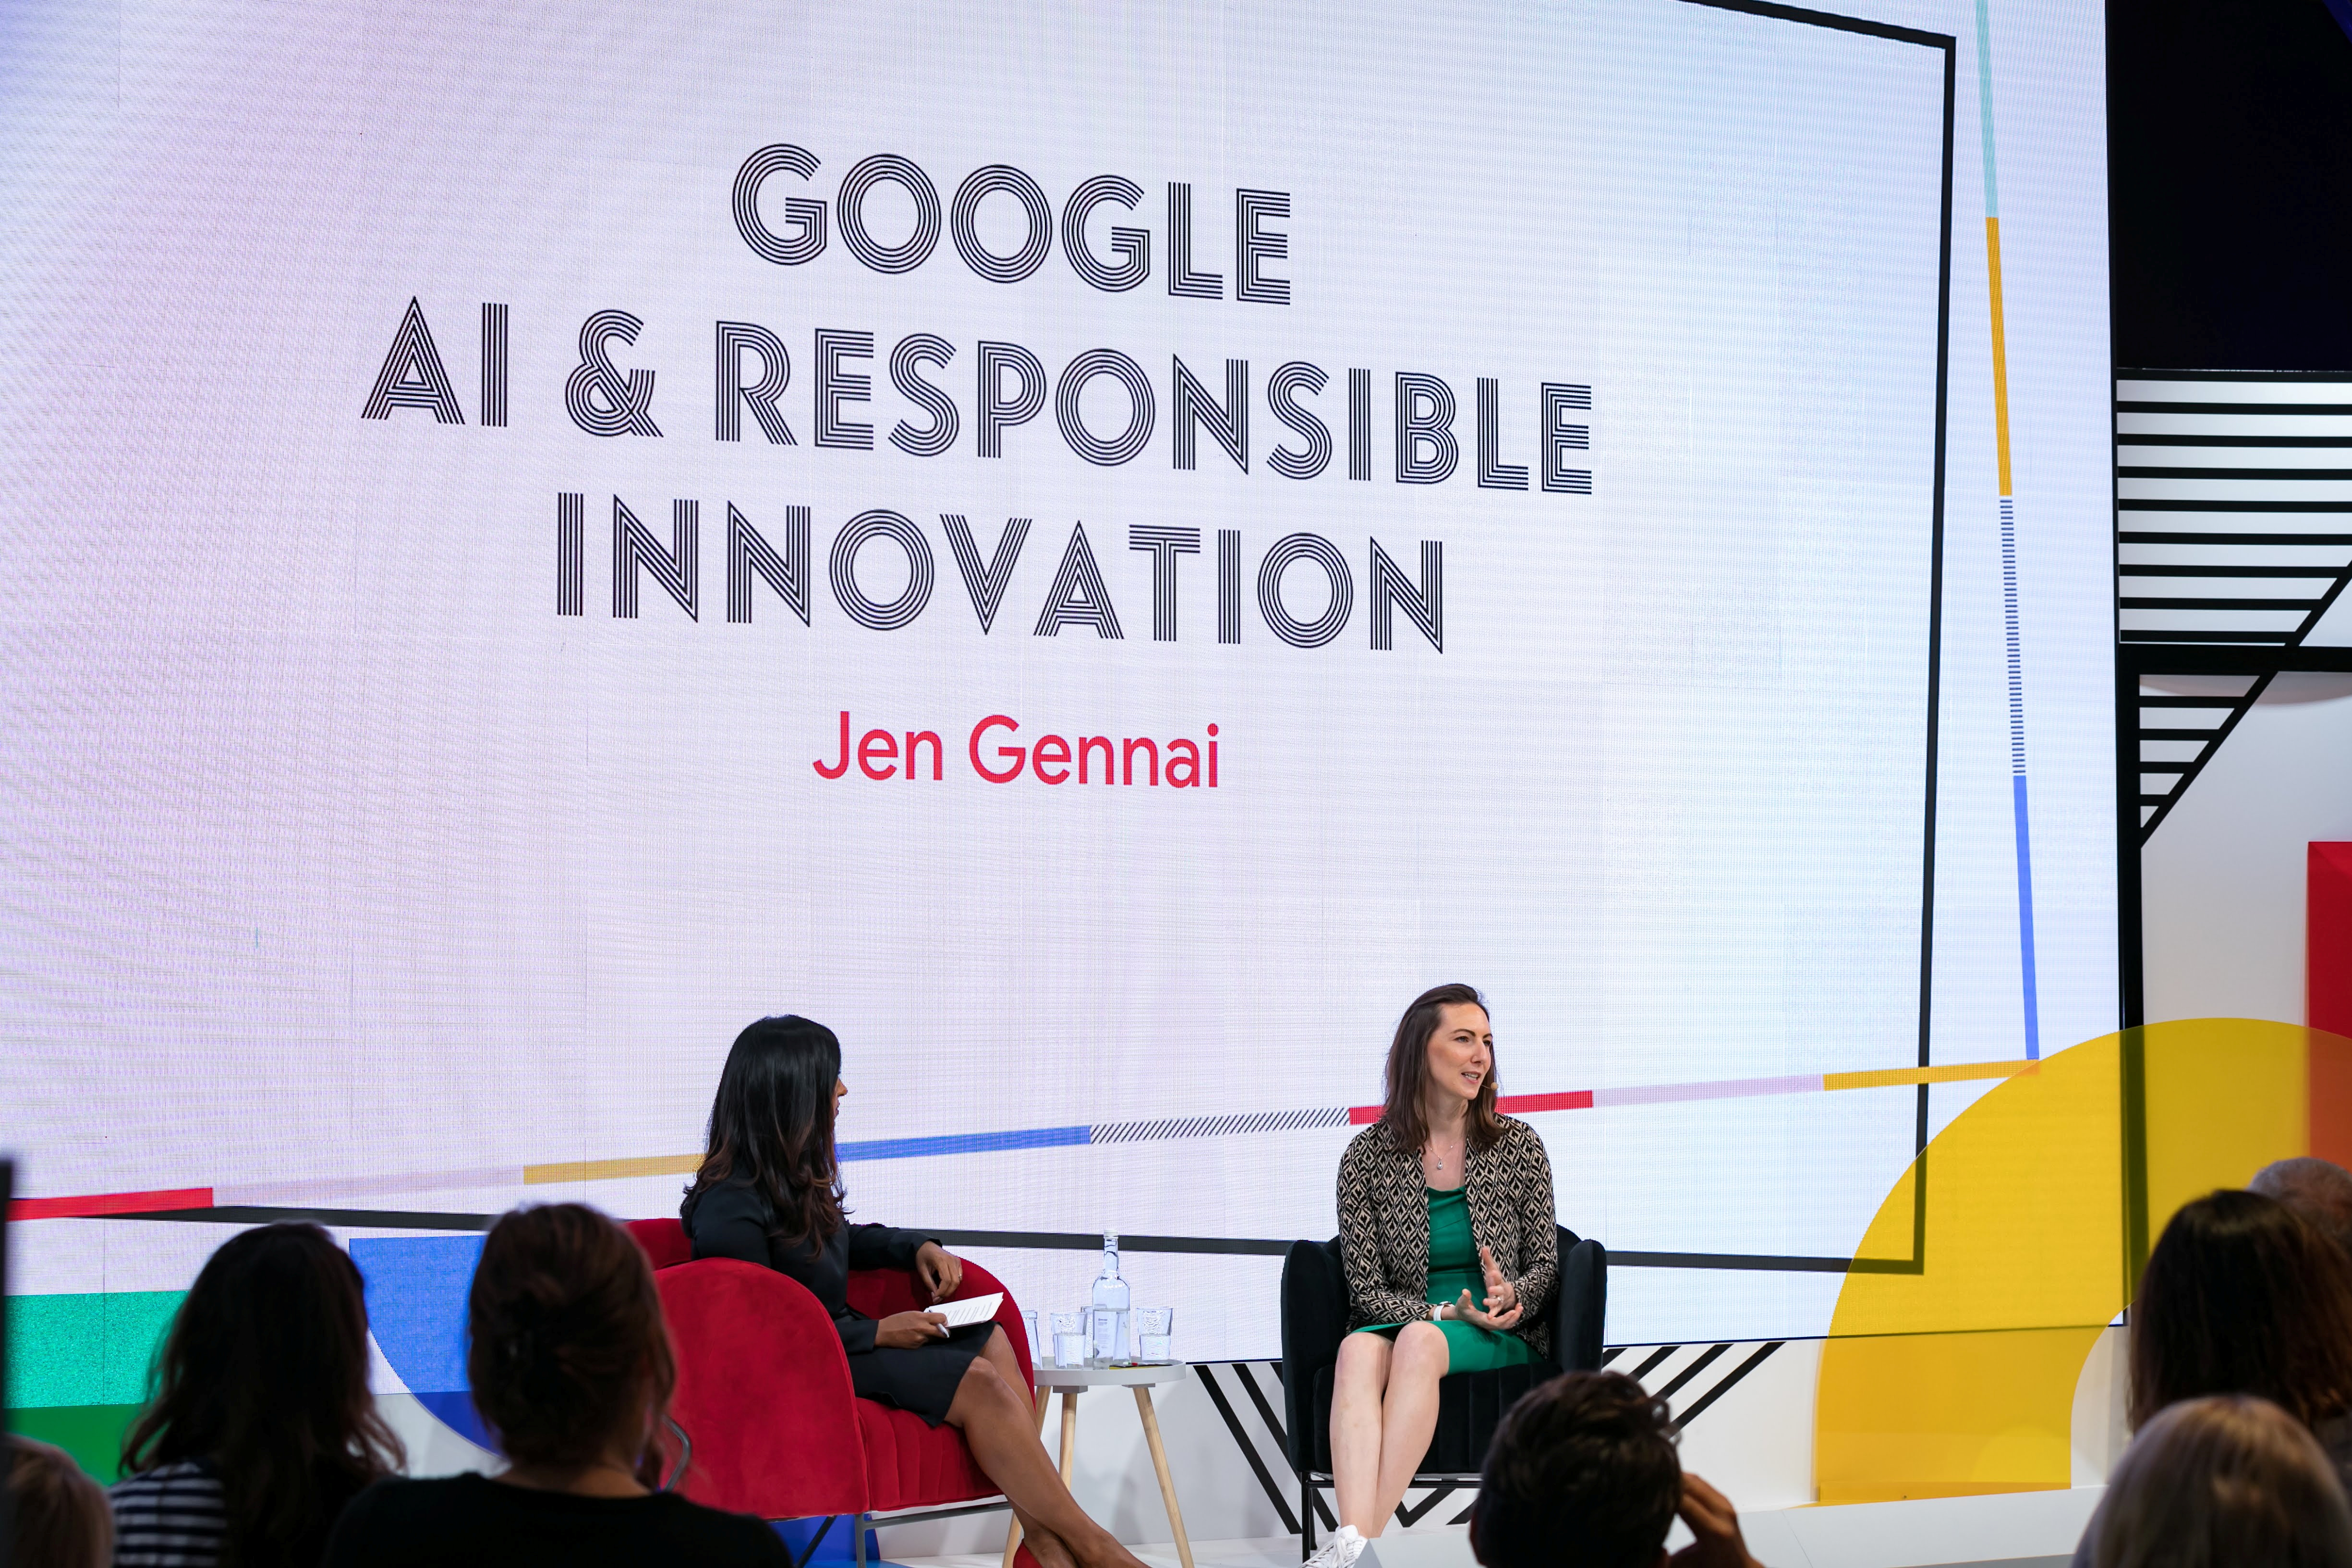 Google responsible innovation team lead and founder Jen Gennai speaks at the Google Executive Summit in London, Britain, in September 2019.  Google /Handout via REUTERS   THIS IMAGE HAS BEEN SUPPLIED BY A THIRD PARTY. NO RESALES. NO ARCHIVES